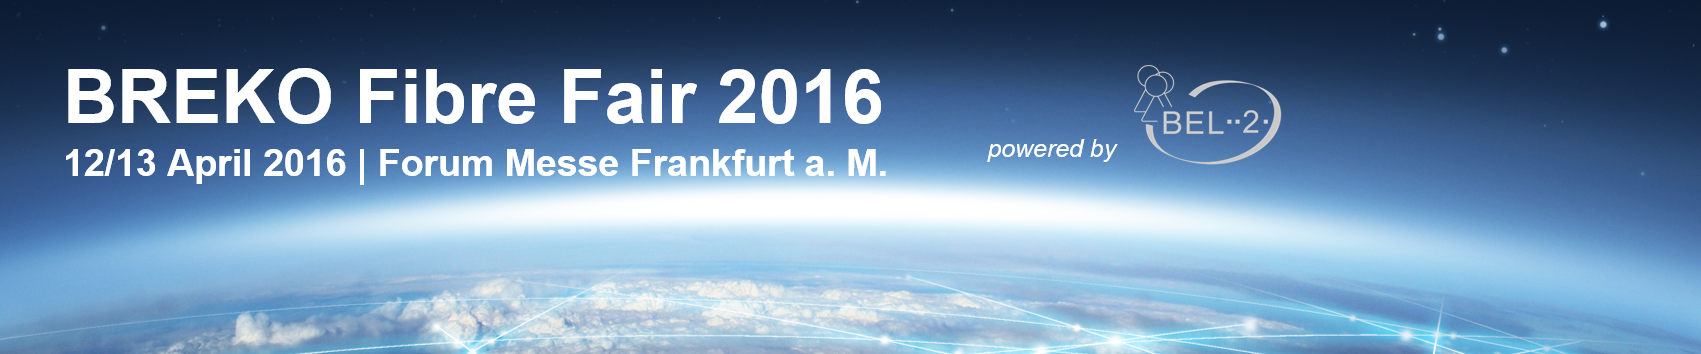 BREKO Glasfasermesse 2016 powered by BEL2